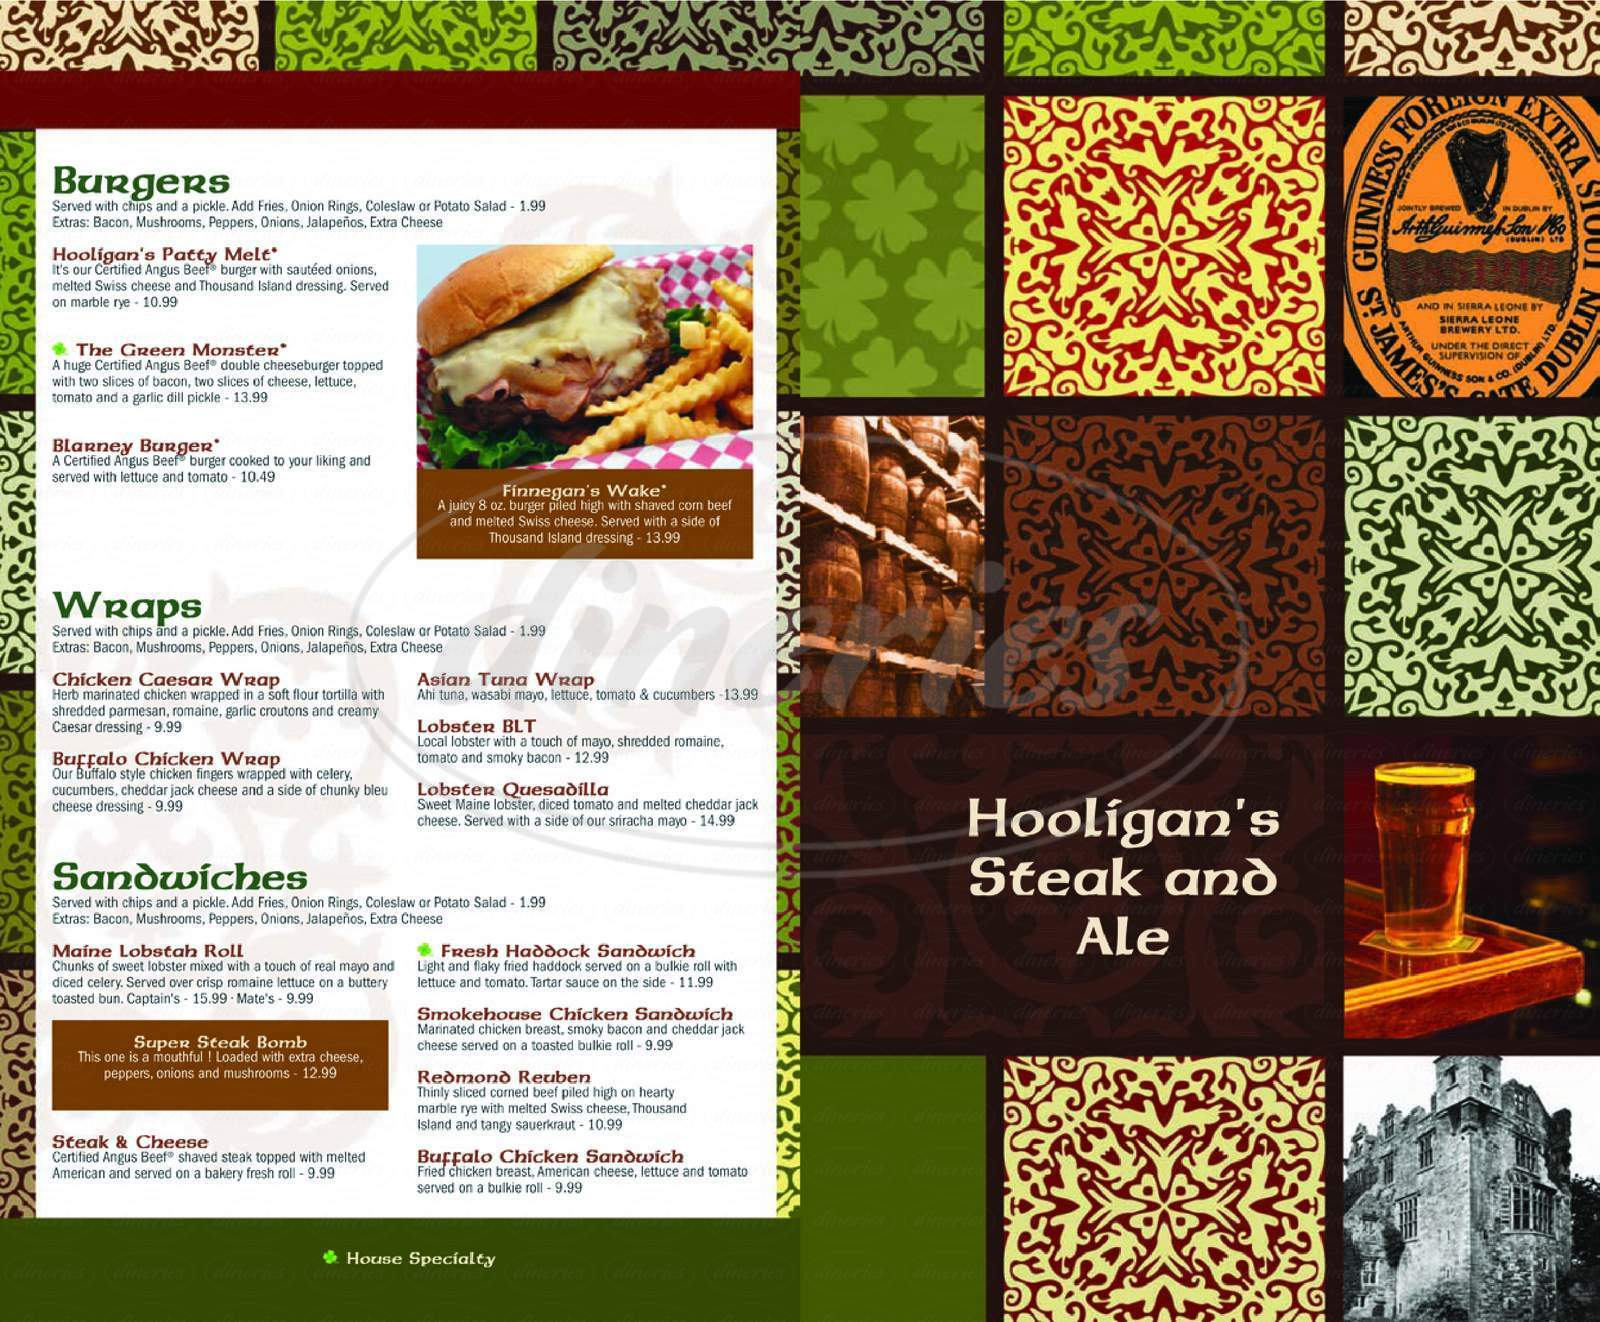 menu for Hooligan's Steak & Ale